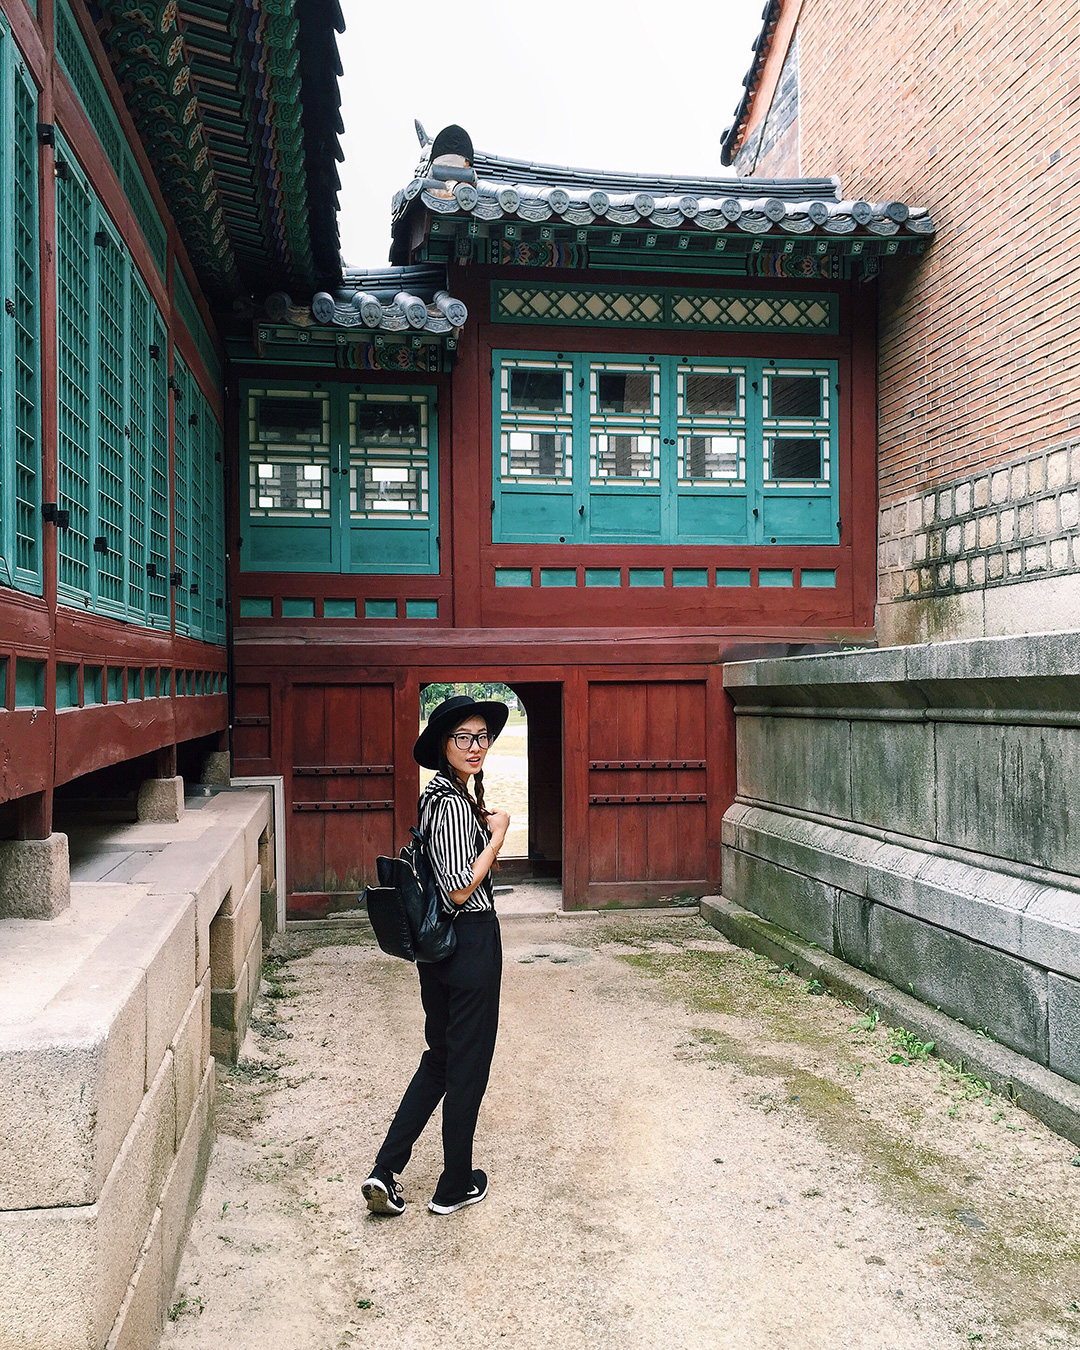 Exploring every nook and cranny of the beautiful Gyeongbokgung Palace.